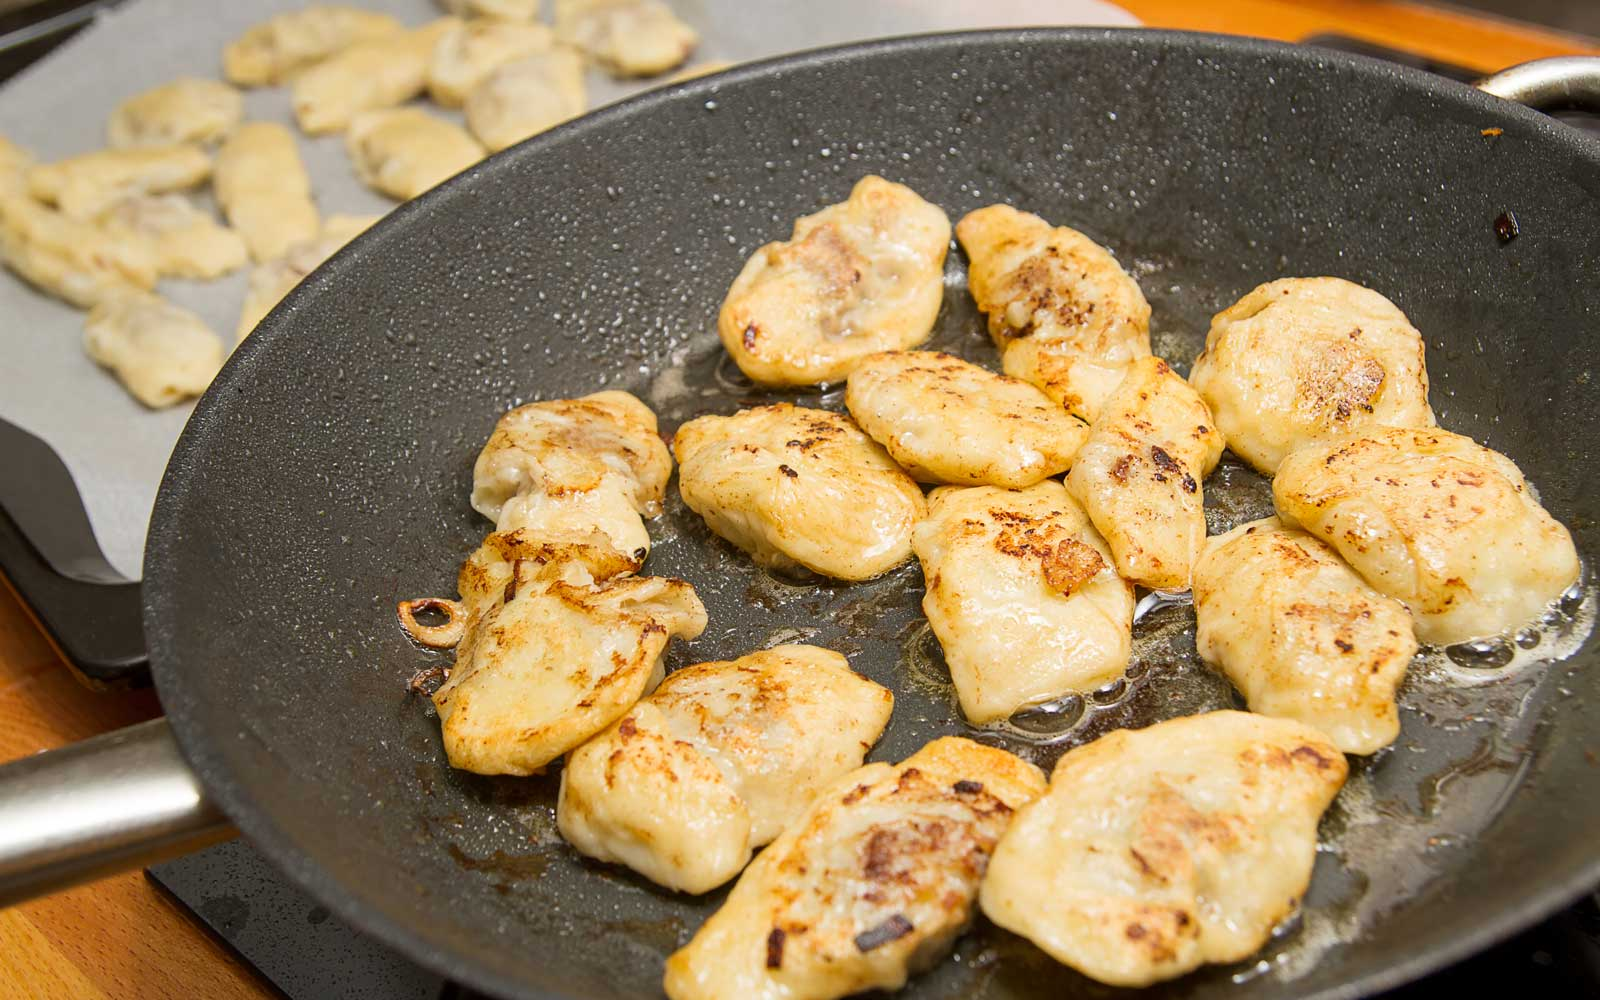 These dumplings come filled with both sweet and savorily ingredients.